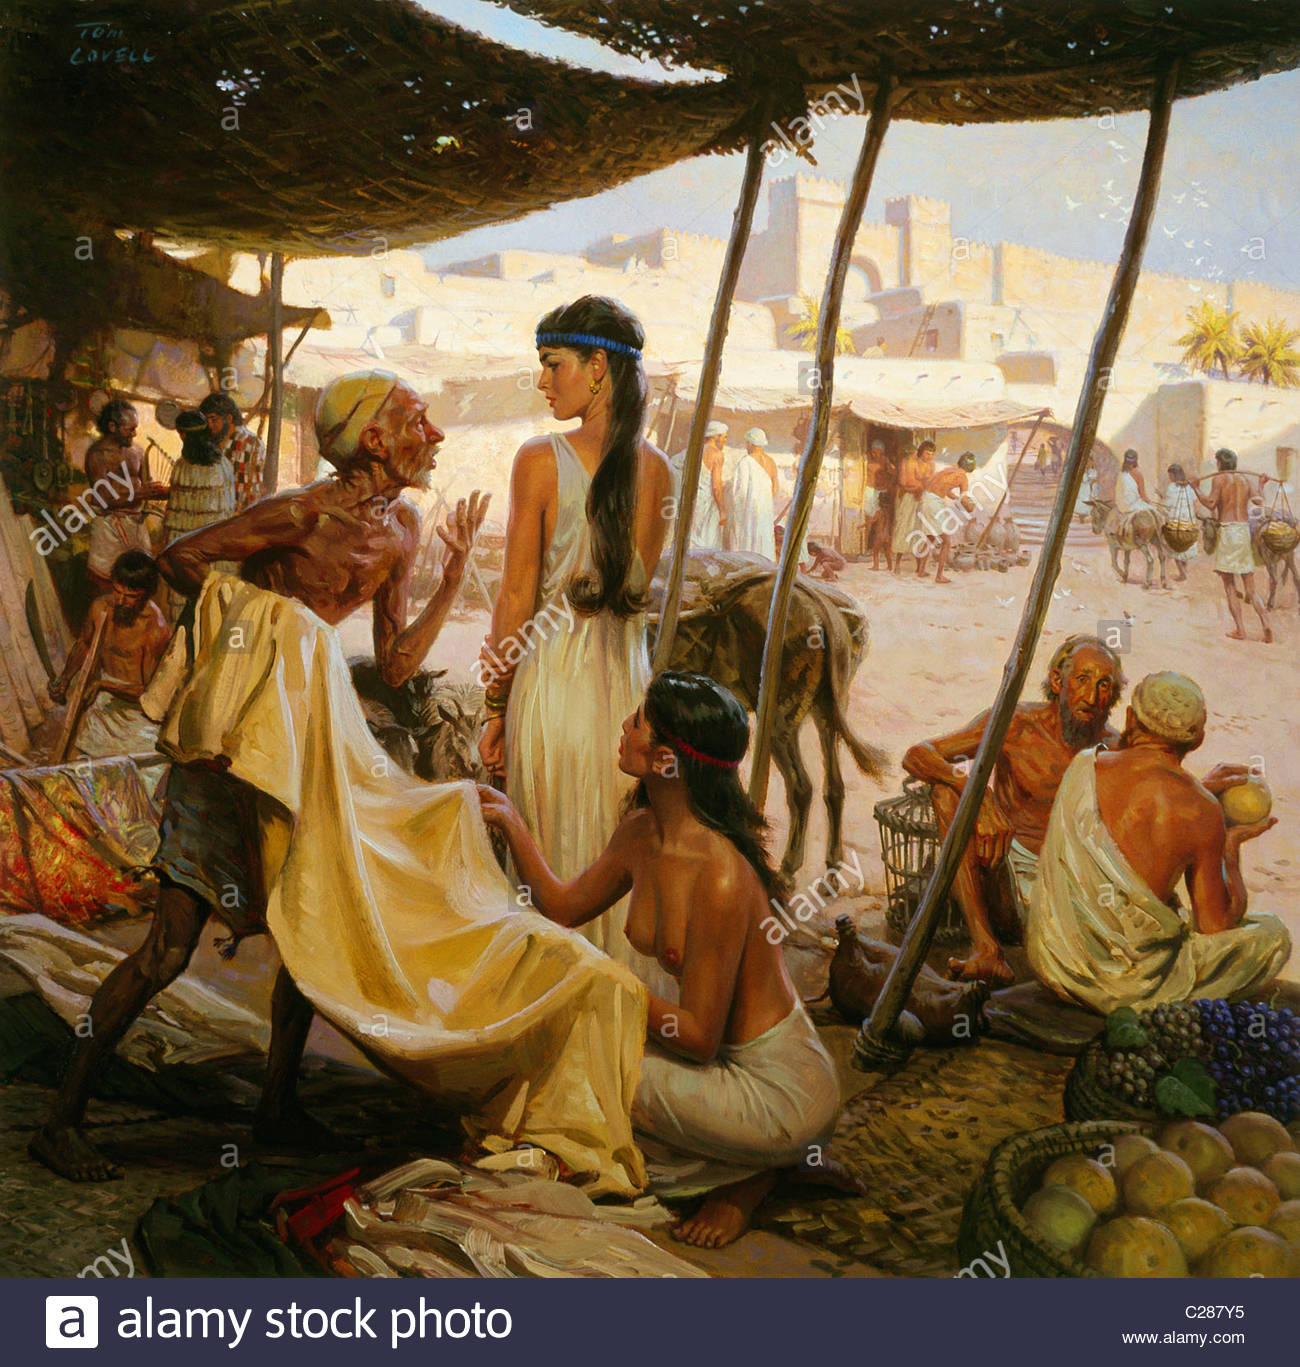 Abraham's wife, Sarai, and a slave bargain for cloth in a marketplace. Stock Photo